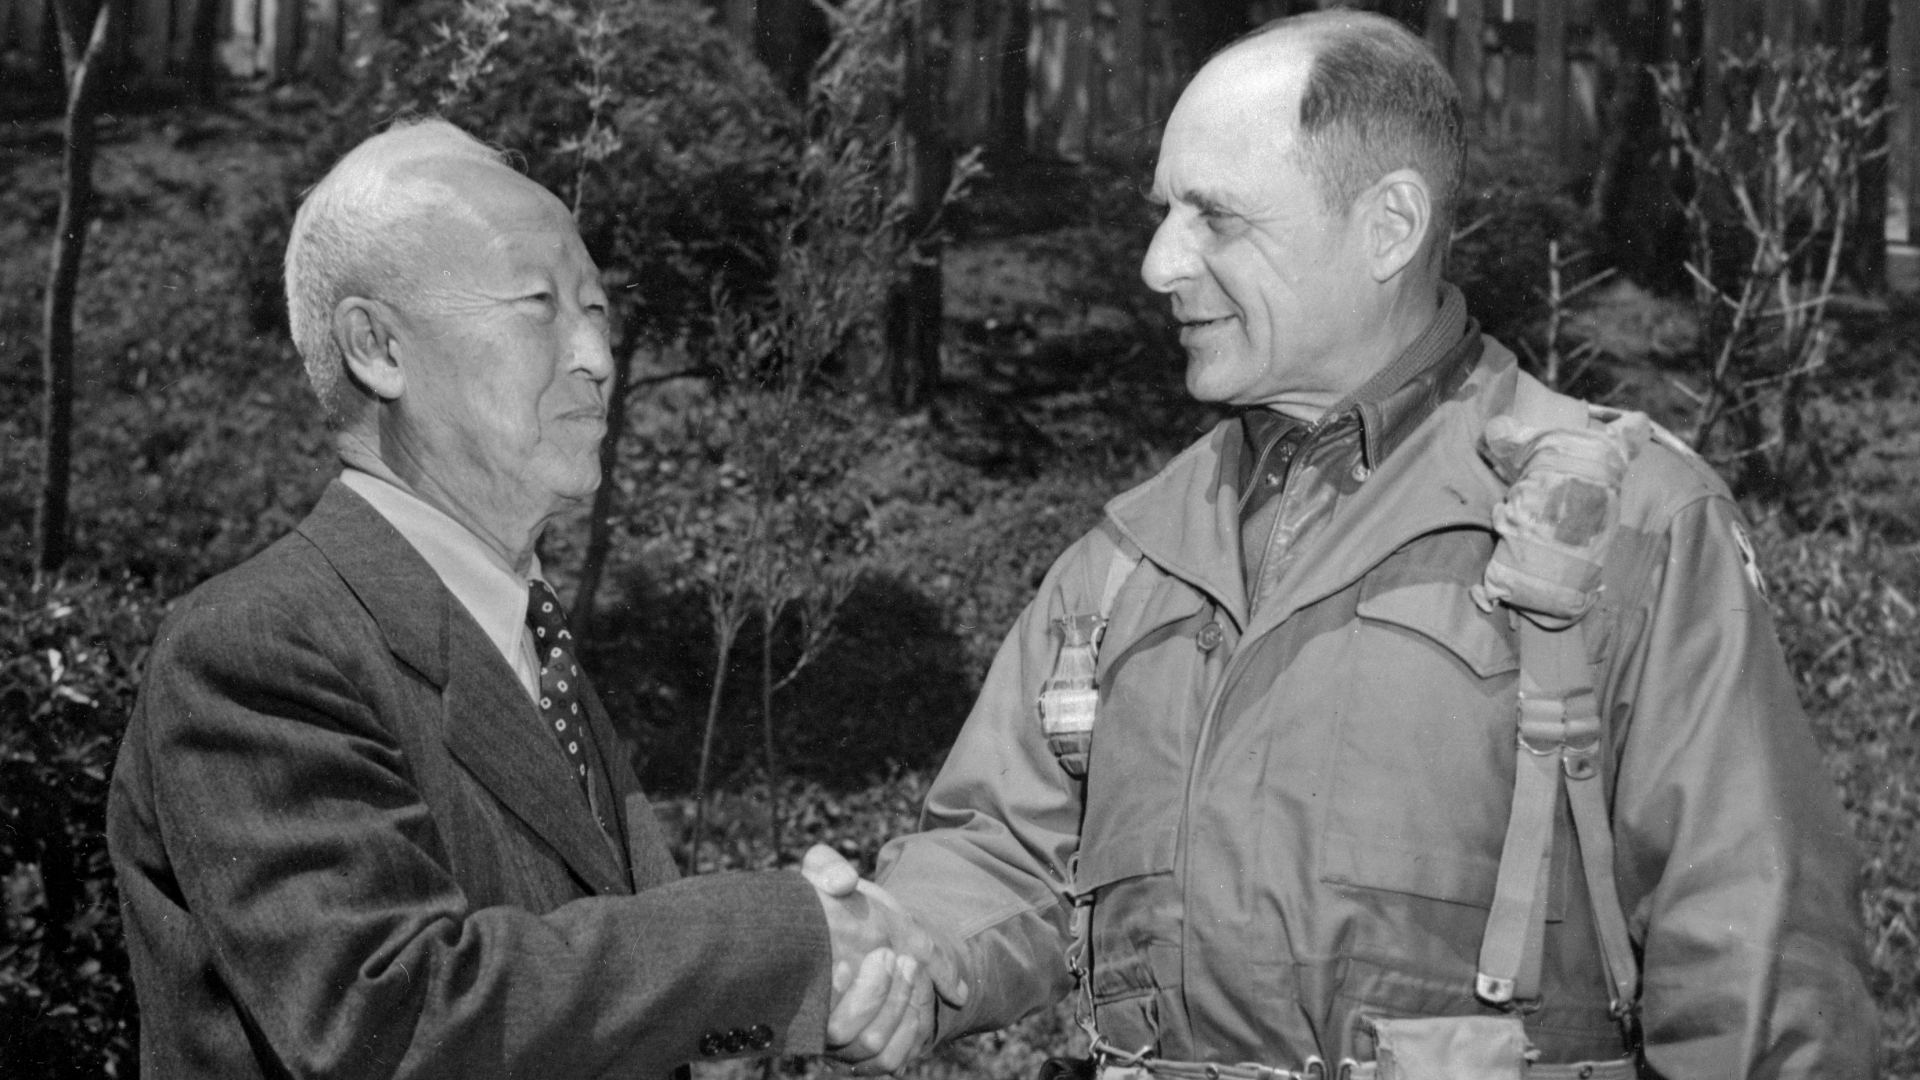 Syngman Rhee, President of Korea, meeting with General Matthew B. Ridgway. (Credit: Bettmann Archives/Getty Images)